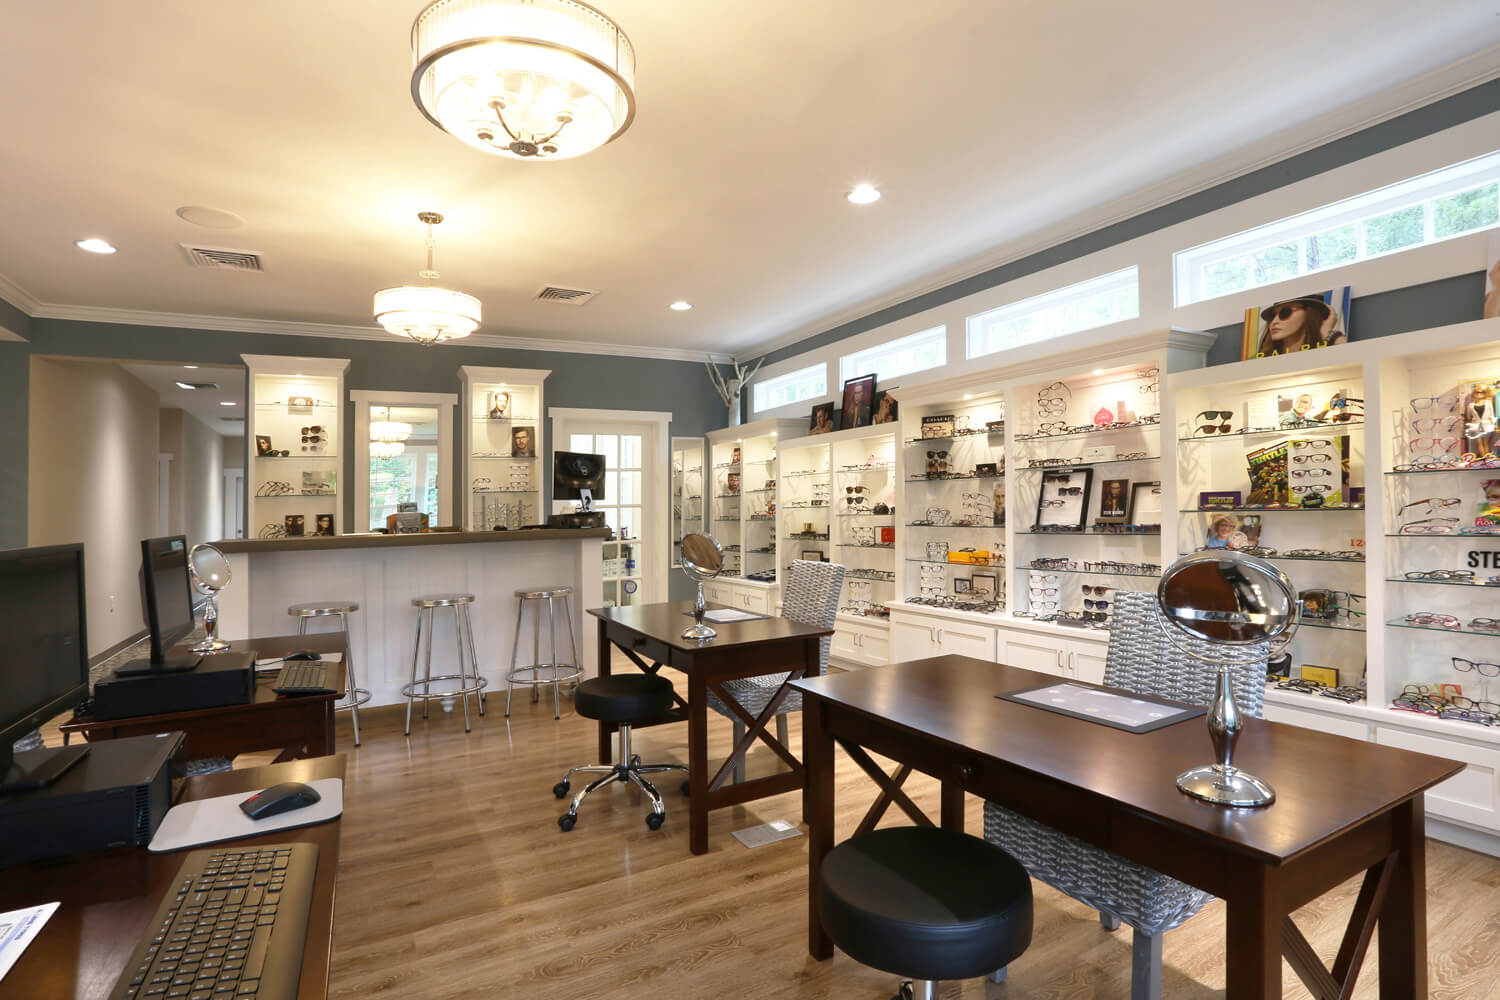 Pike Road Family Eyecare Designed by Foshee Architecture – Eyeglass Fitting Area